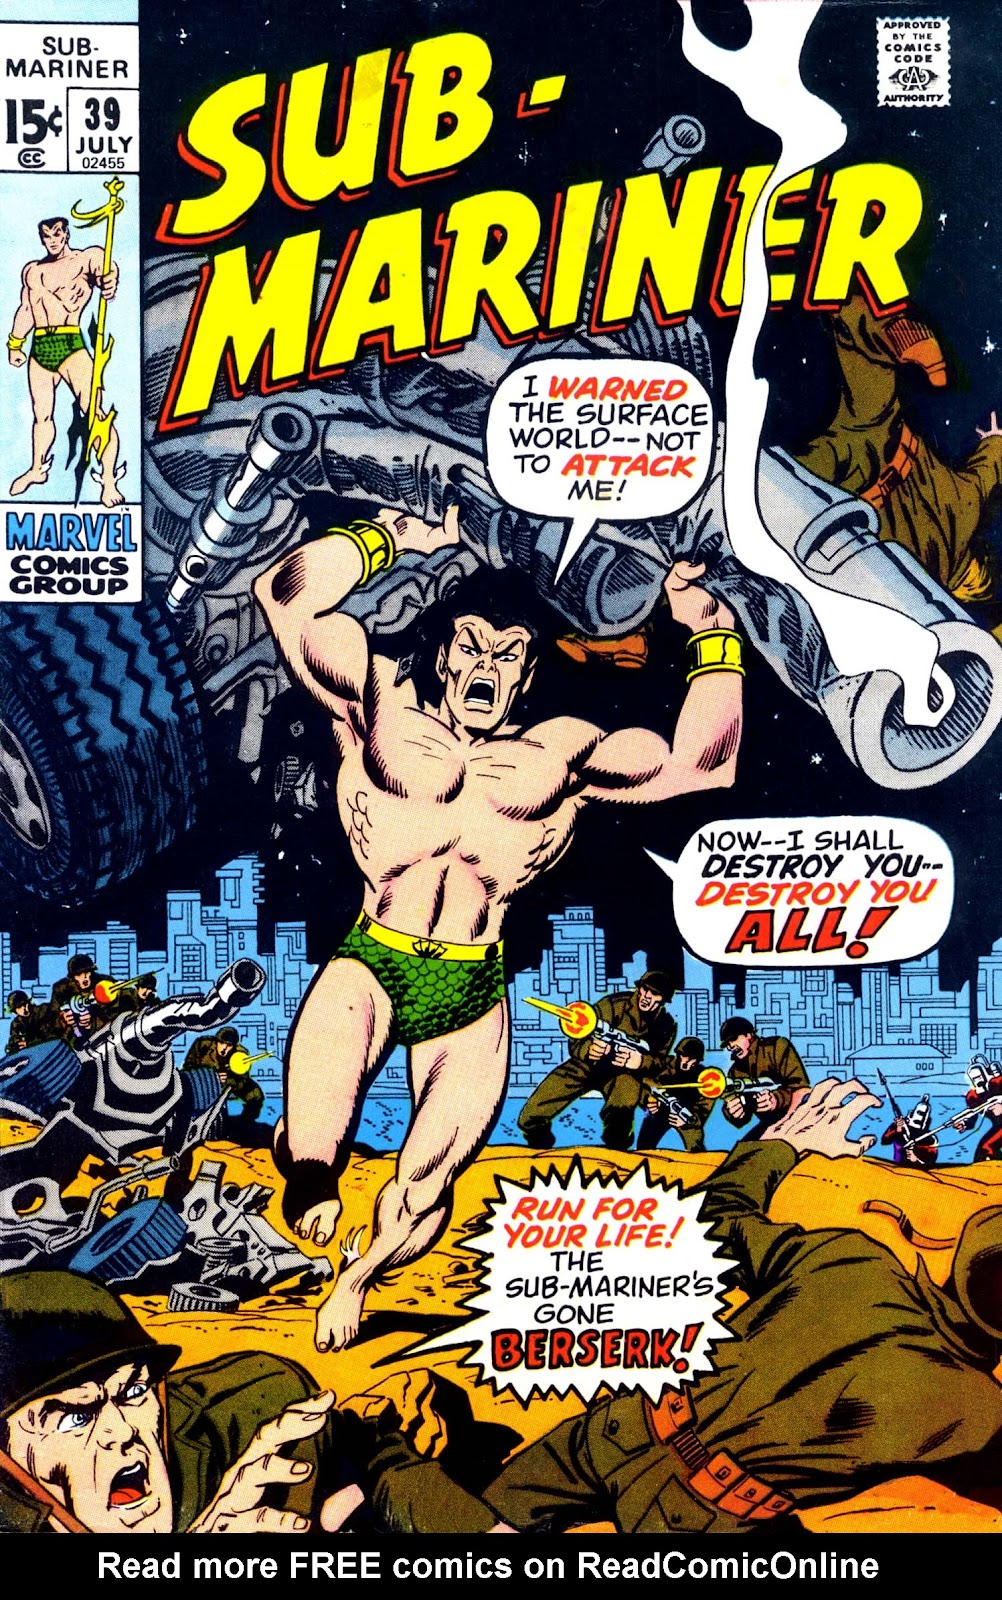 The Sub-Mariner 39 Page 1